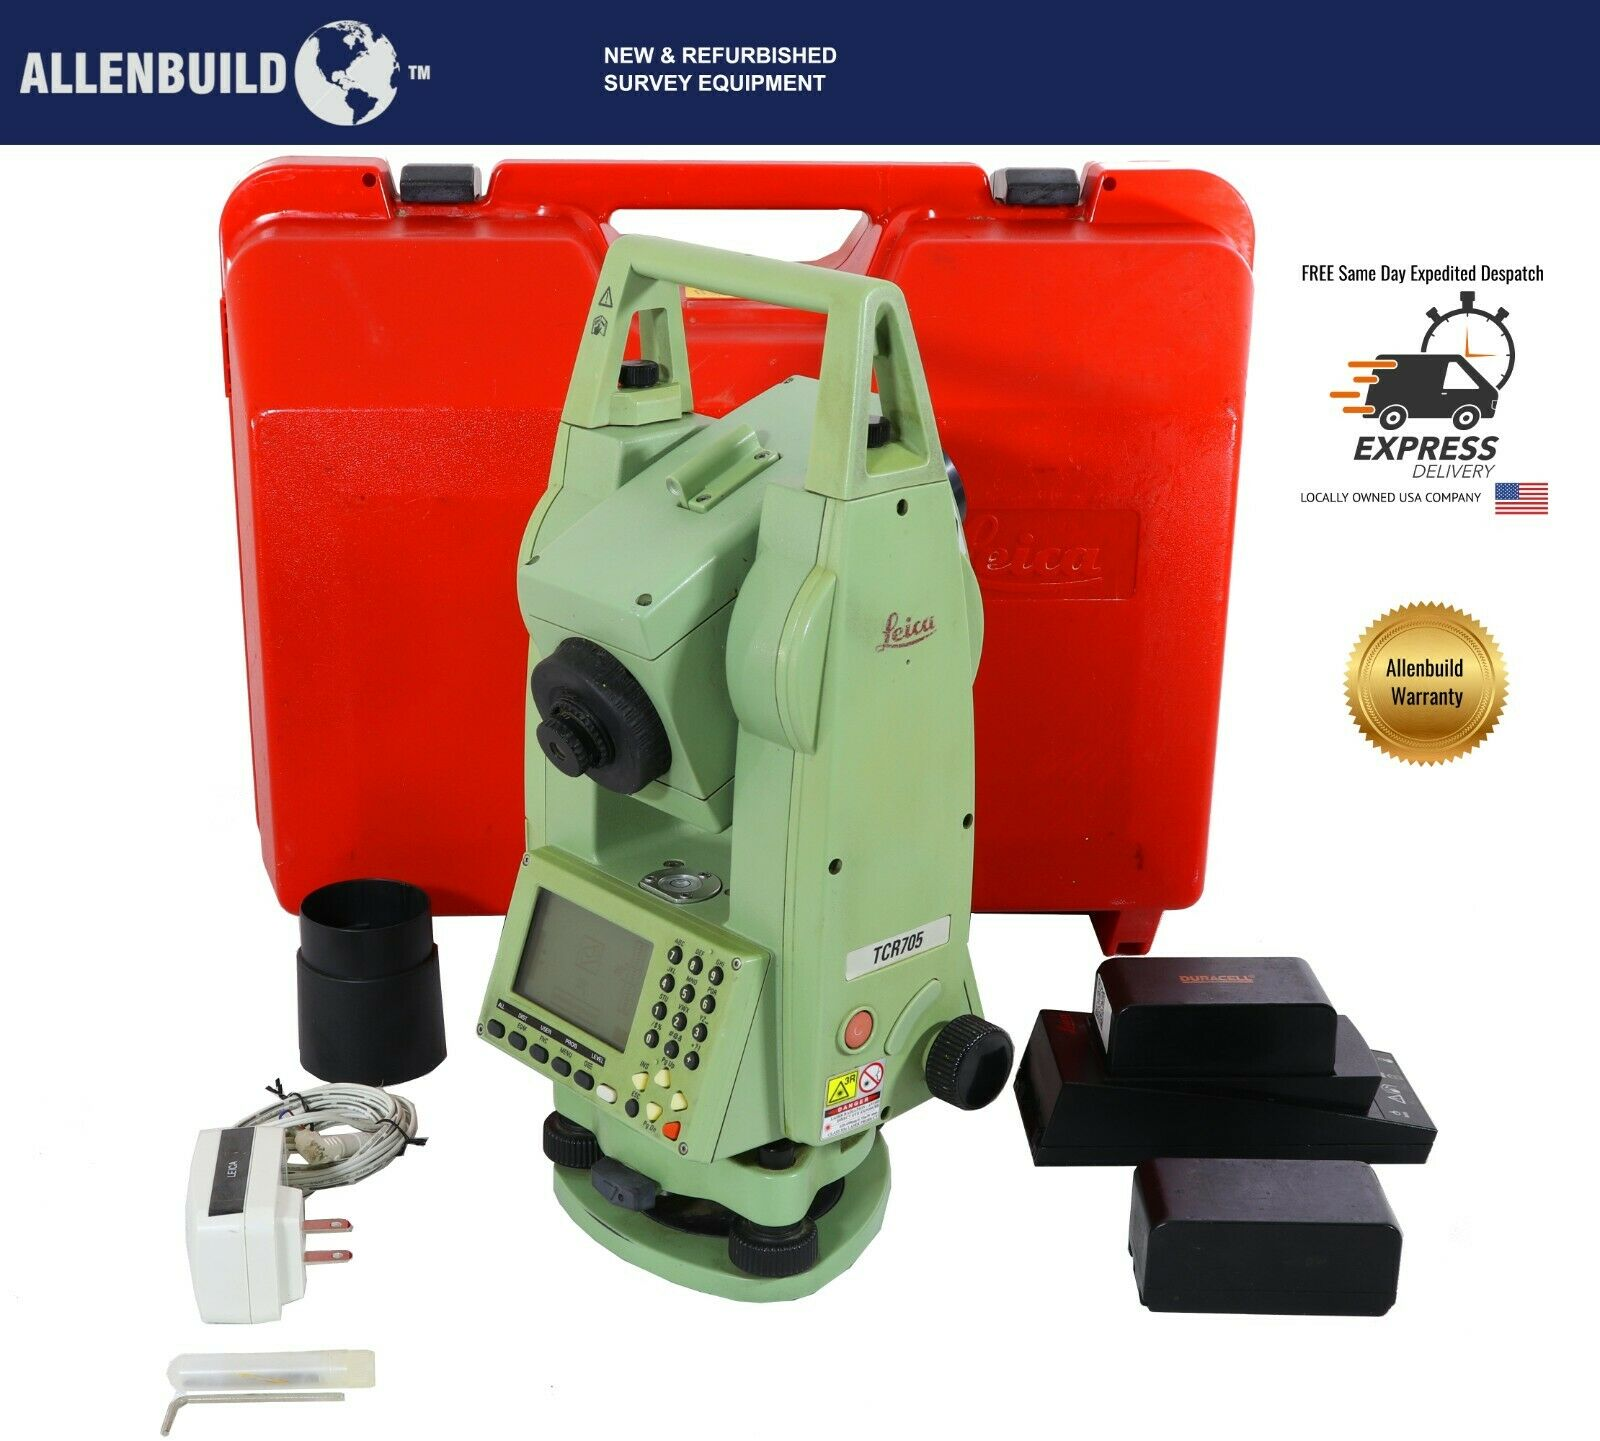 LEICA TCR705 TOTAL STATION for construction/Land SURVEYING